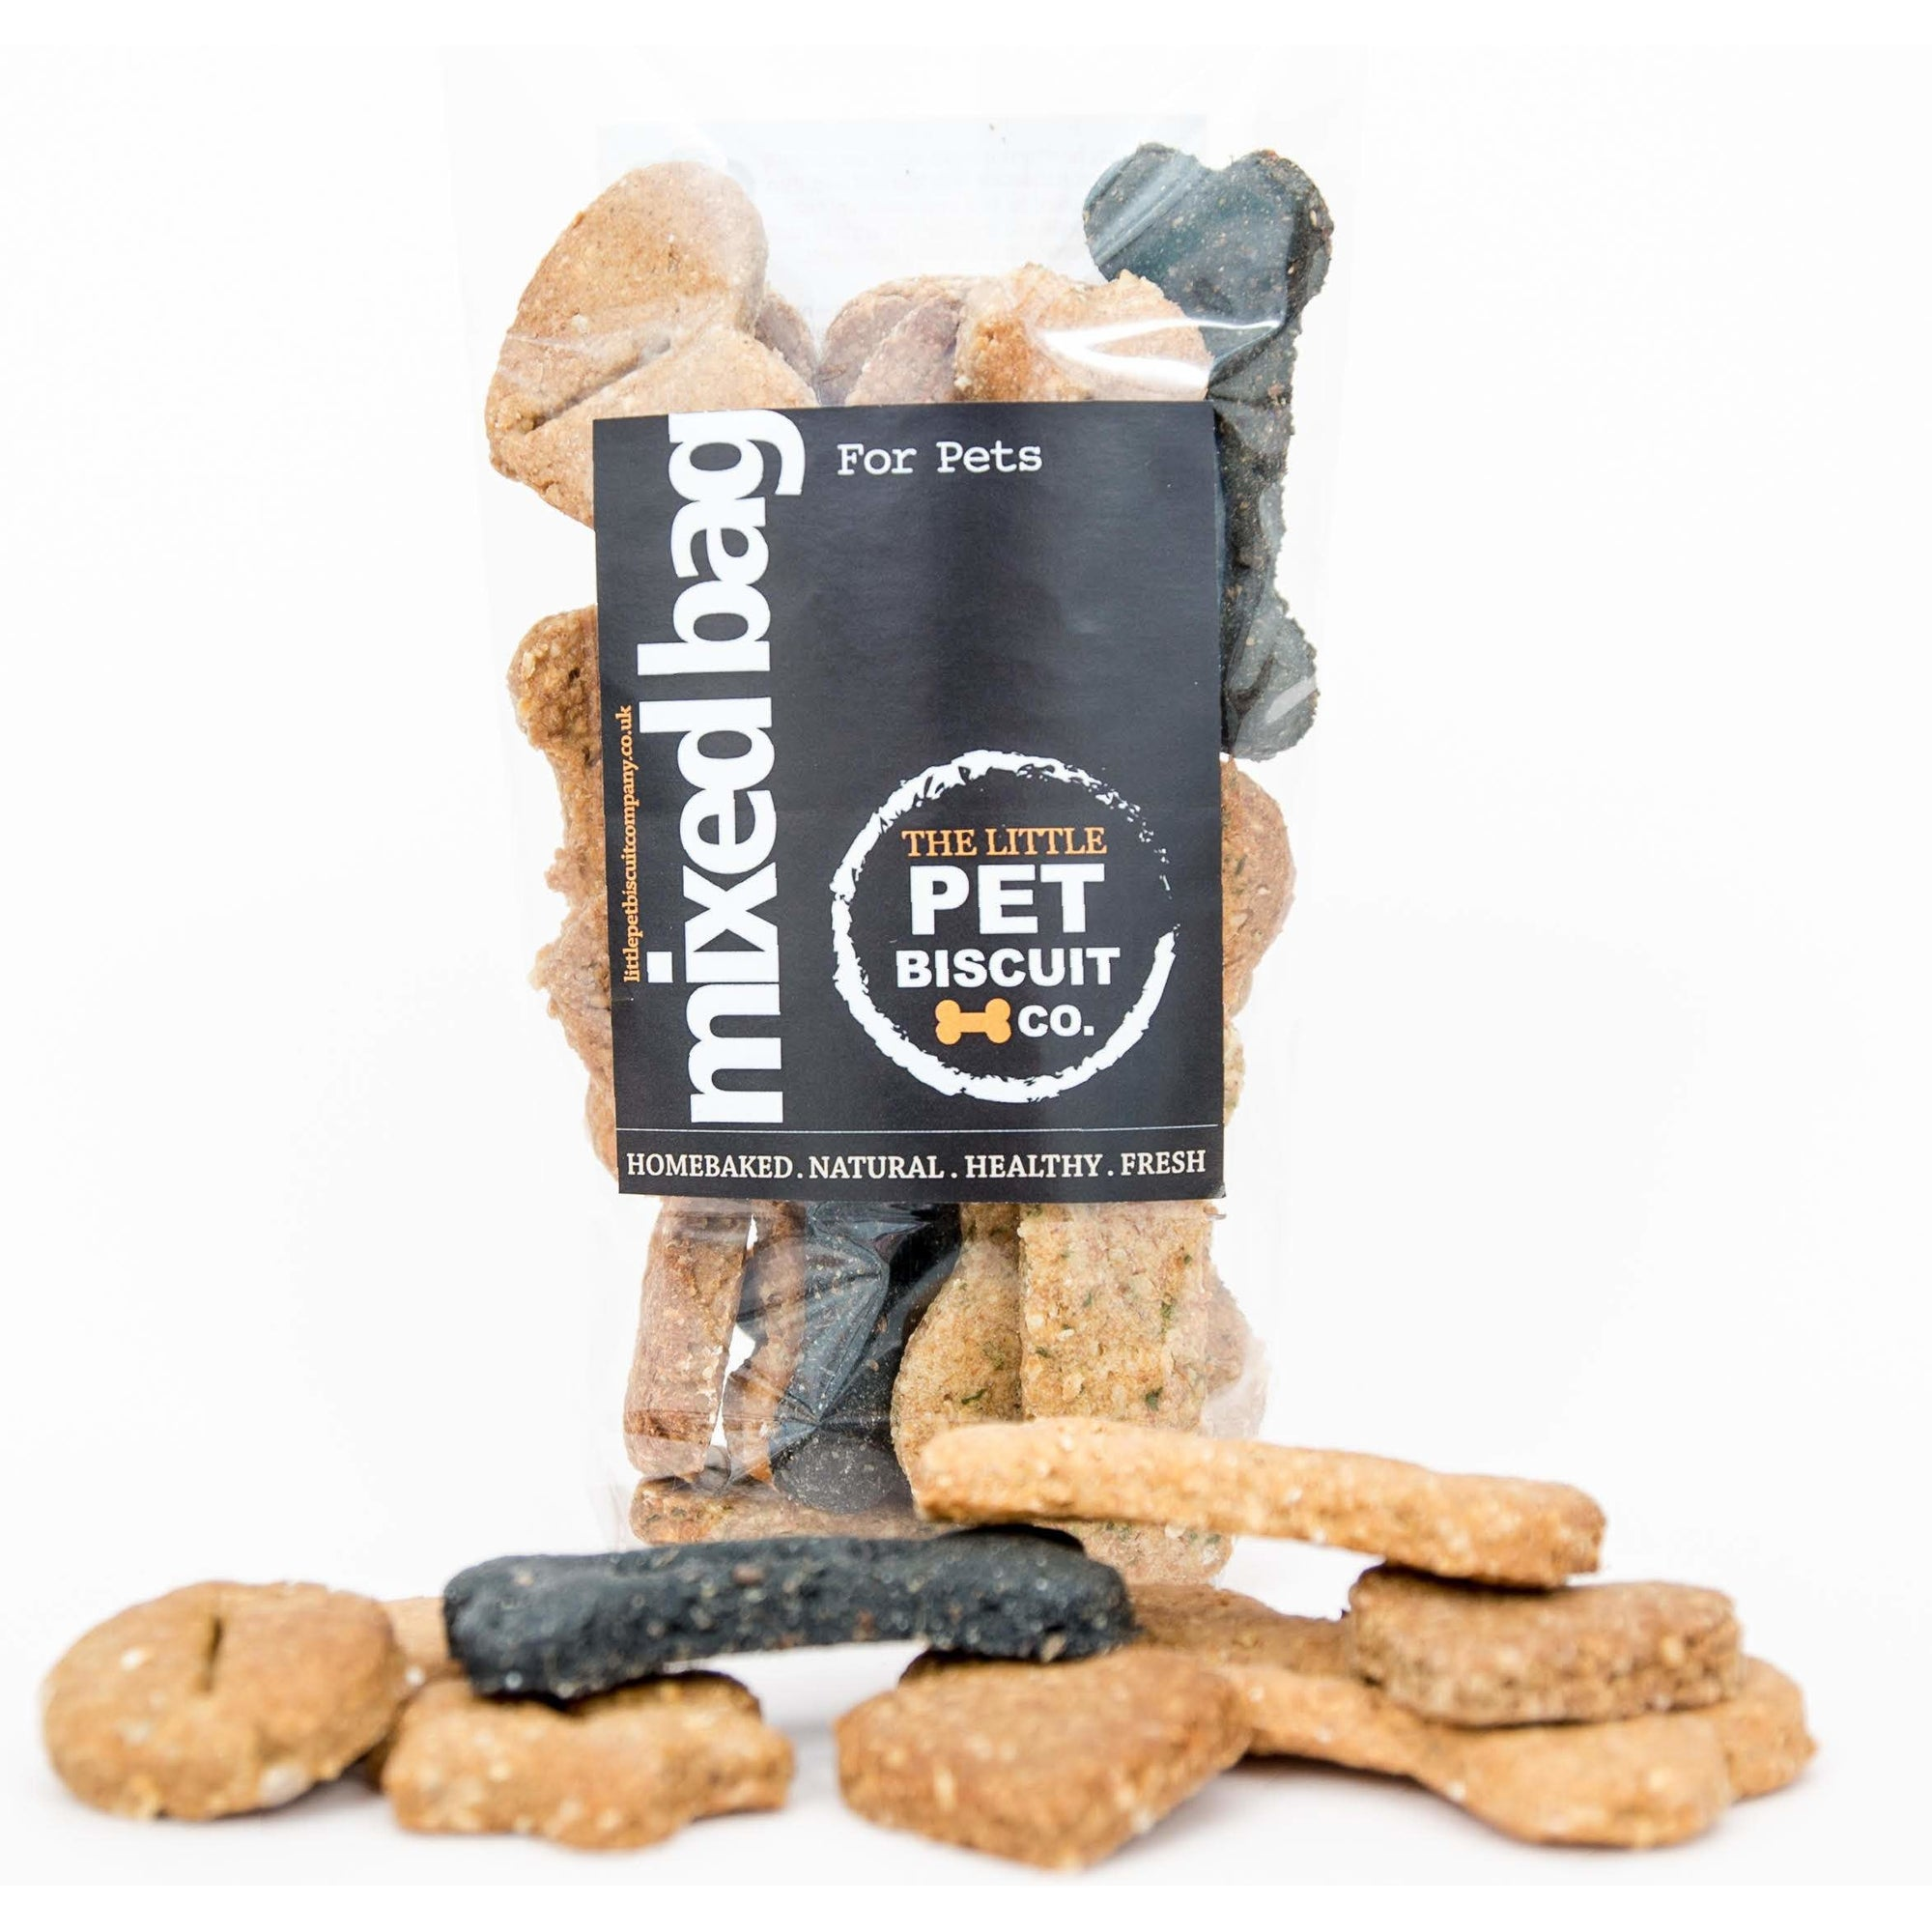 Mixed bag of natural handmade dog biscuits